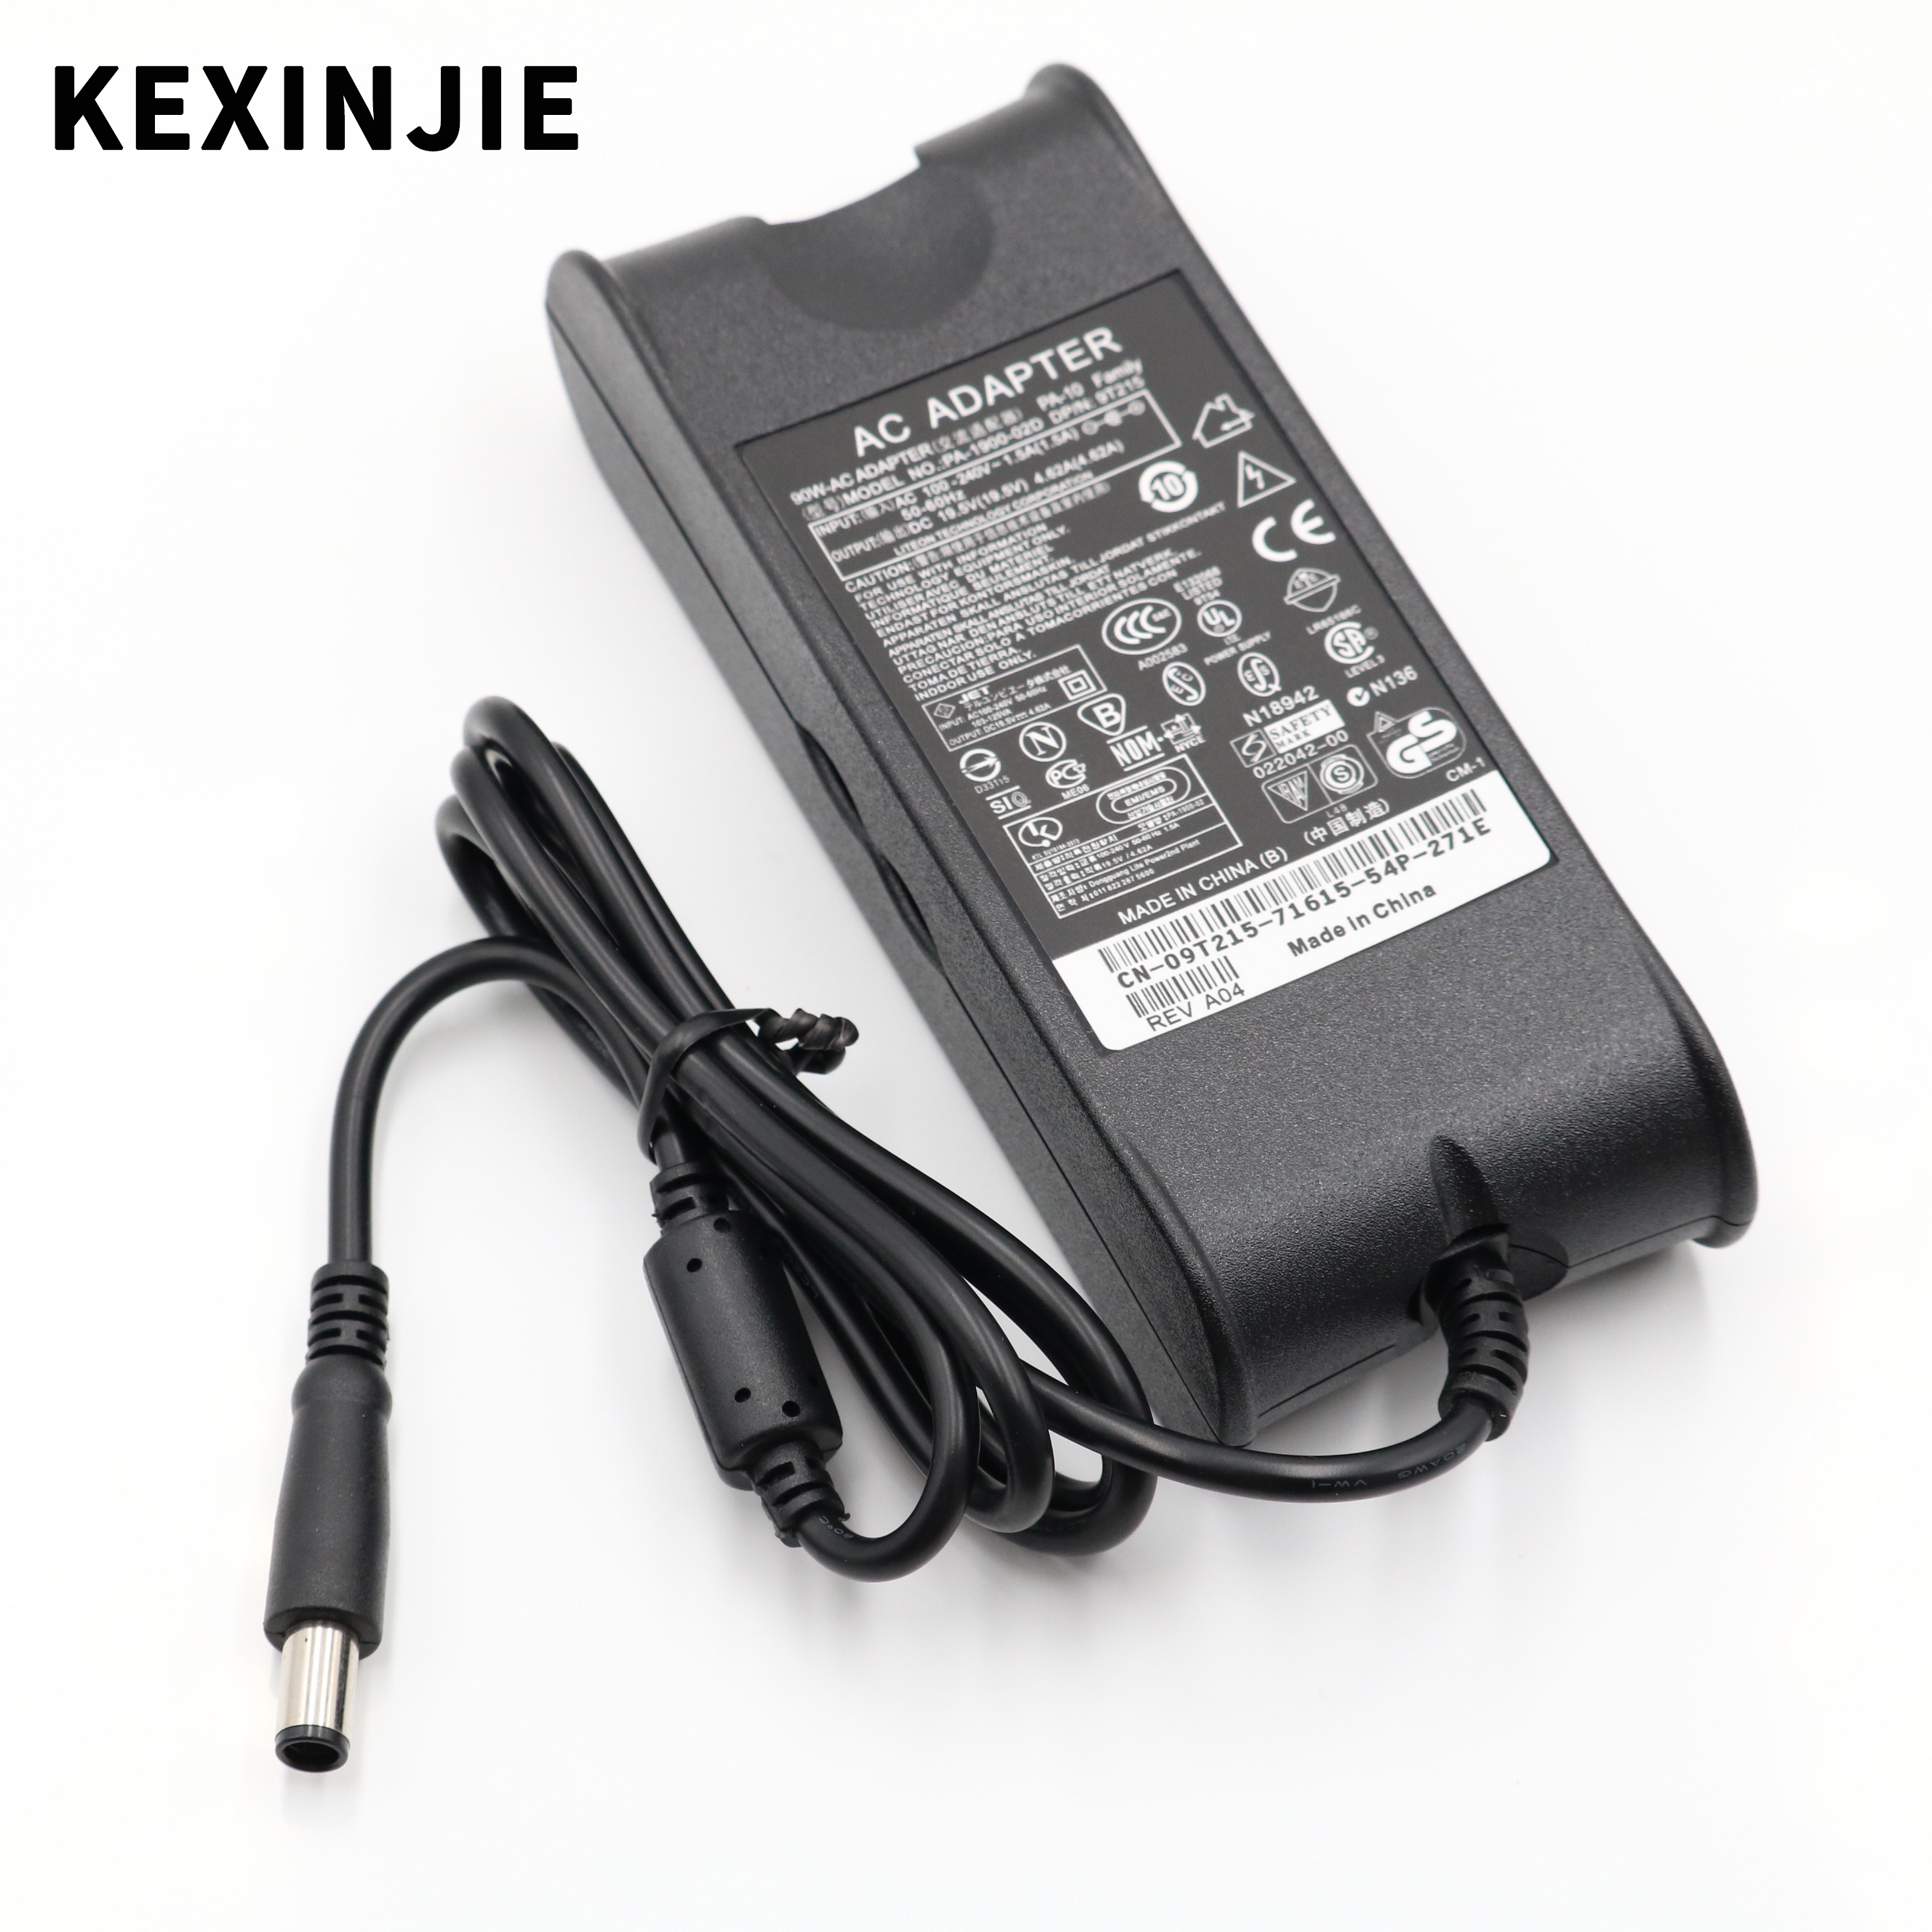 19.5V 4.62A For Dell NoteBook Laptop Charger Power Adapter DC 7.5*5.5mm 19.5V4.62A 90W M411R M501 M5010 M5030 N3010 N4010 N4110